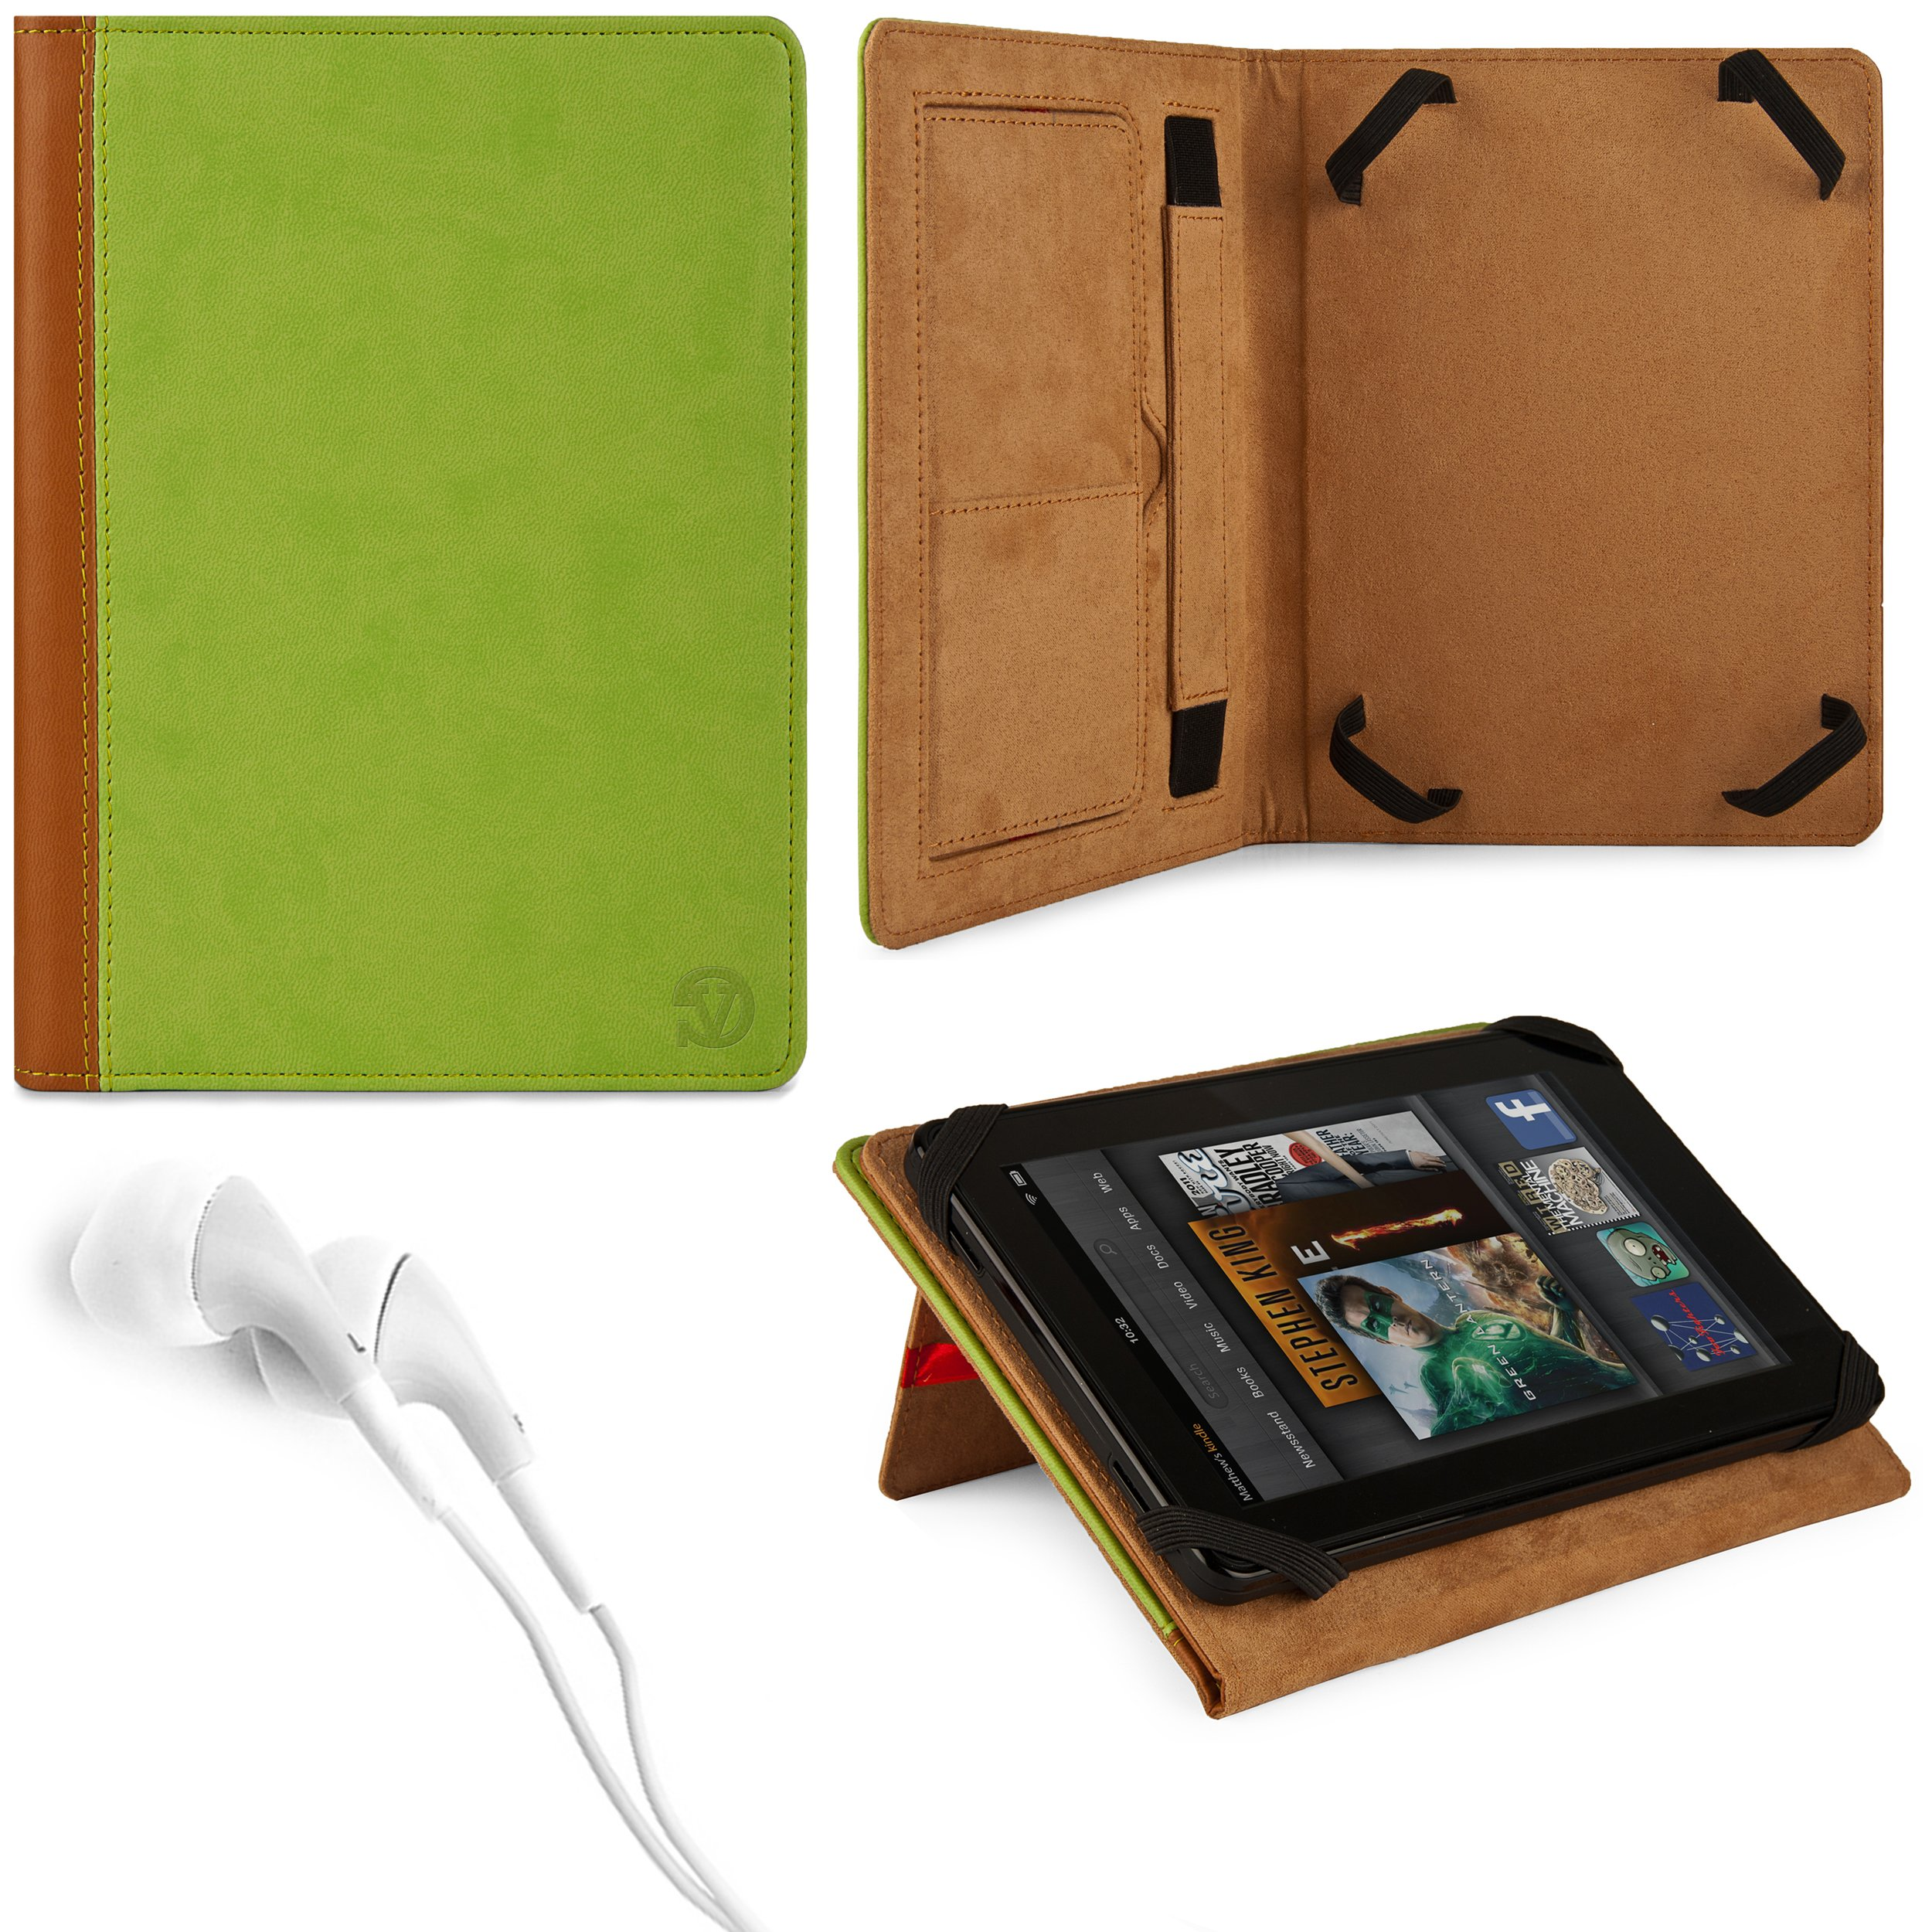 Marry Edition VG Brand Folio Stand Alone Protective Leatherette Carrying Case Cover Case Cover-(Green) for Coby Kyros MID7048-4 (Capacitive ) 7-inch Android Tablet + White Stereo Hifi Noise Isolating Premium Headphones with Silicone Ear Tips